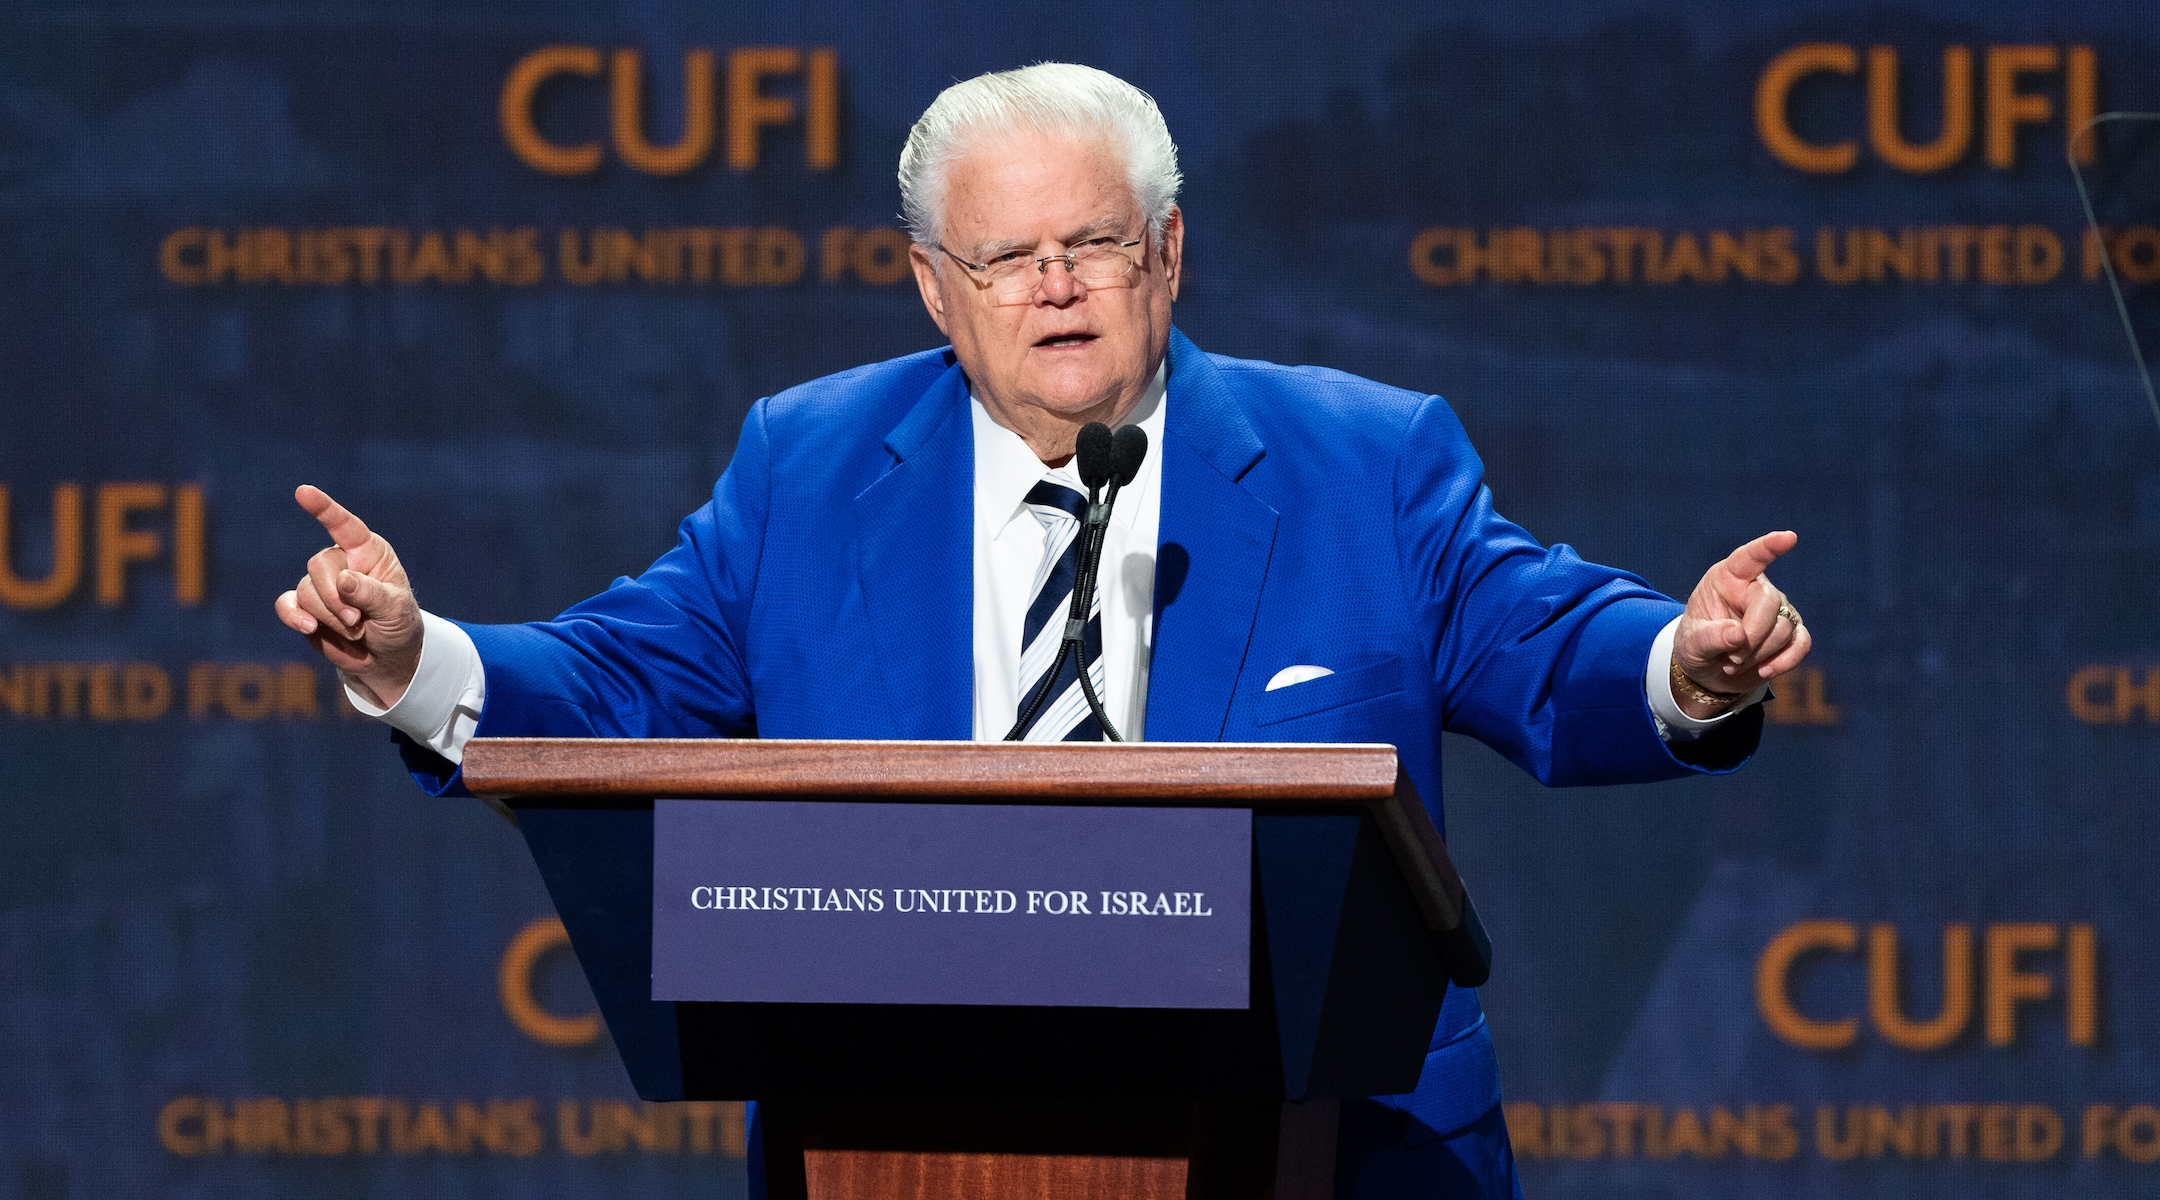 Christian Zionist lobby makes its case to Washington's